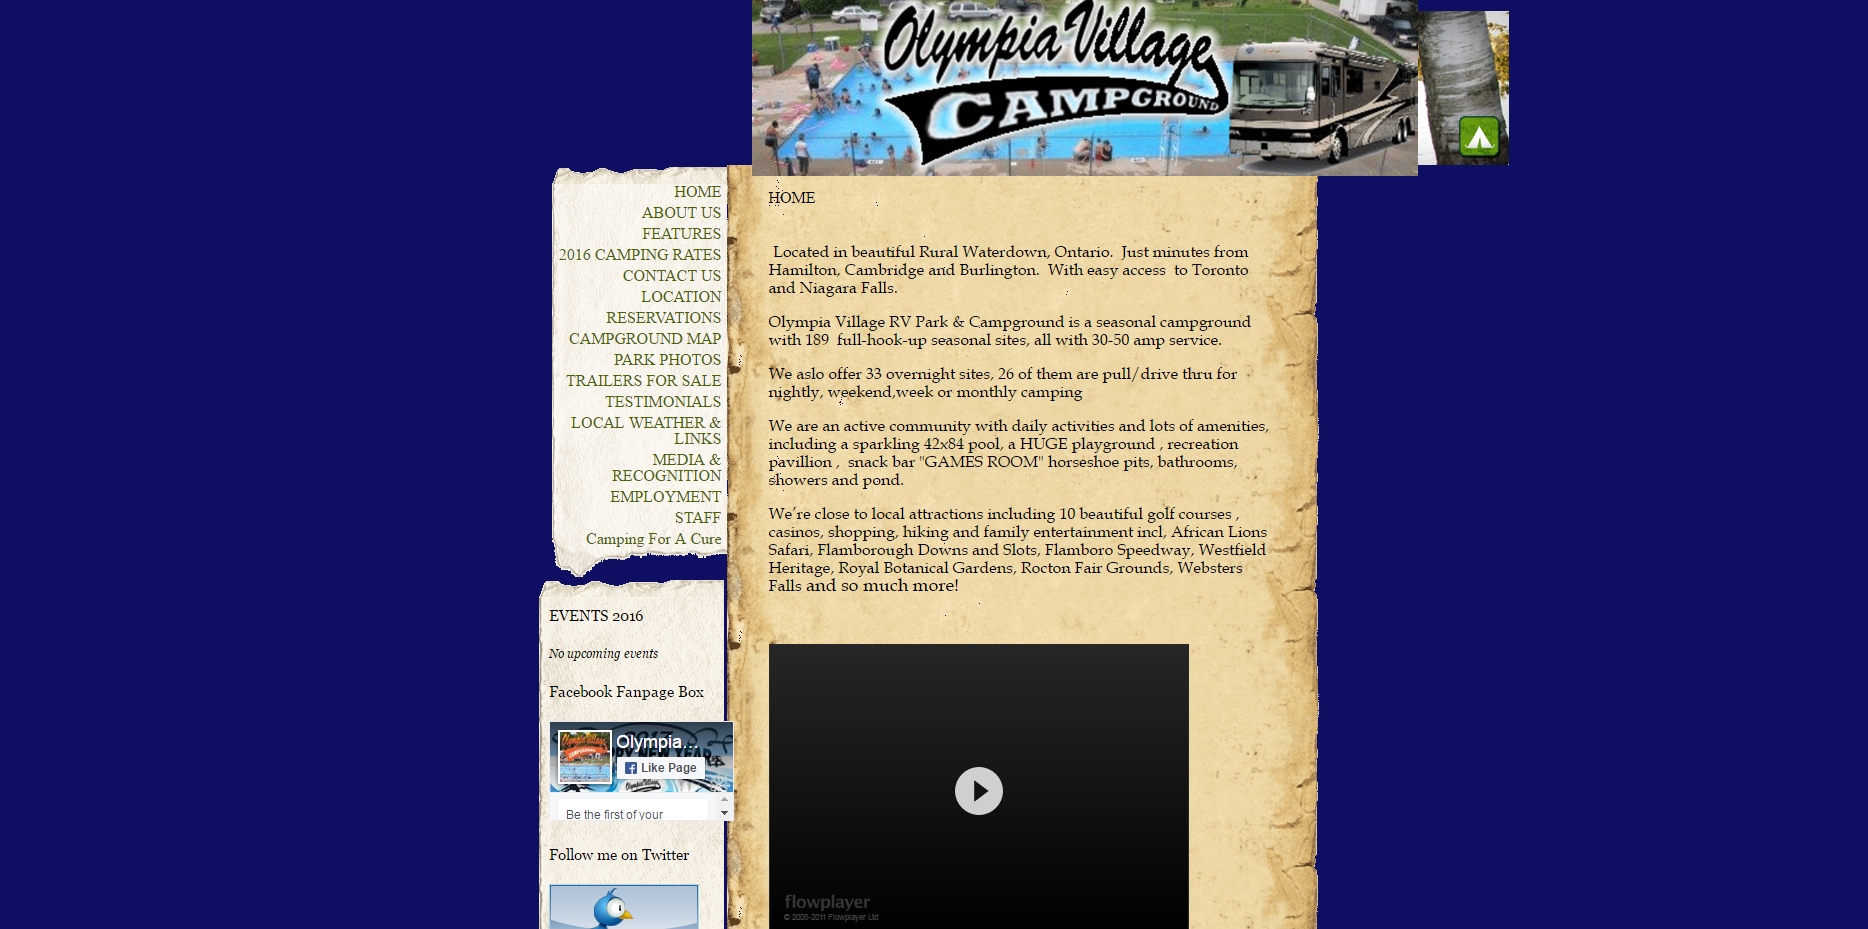 Campground website screen shot